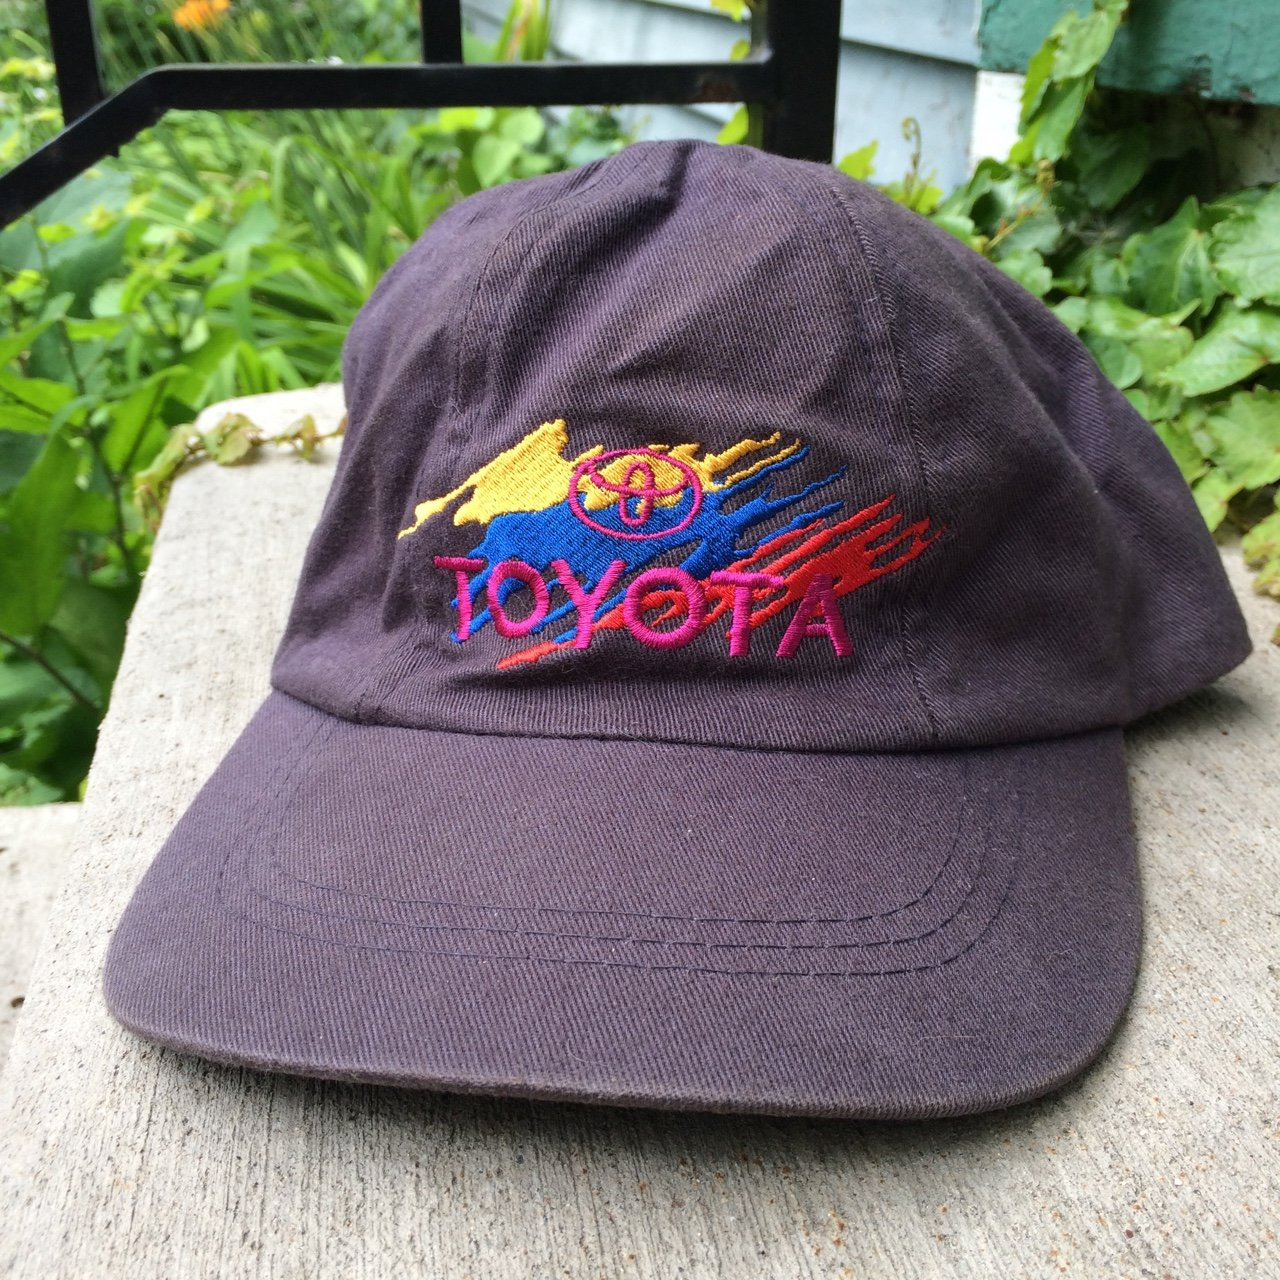 fb9c69e102c Toyota embroidered scrounged cap!  toyota  hat  caps - Depop